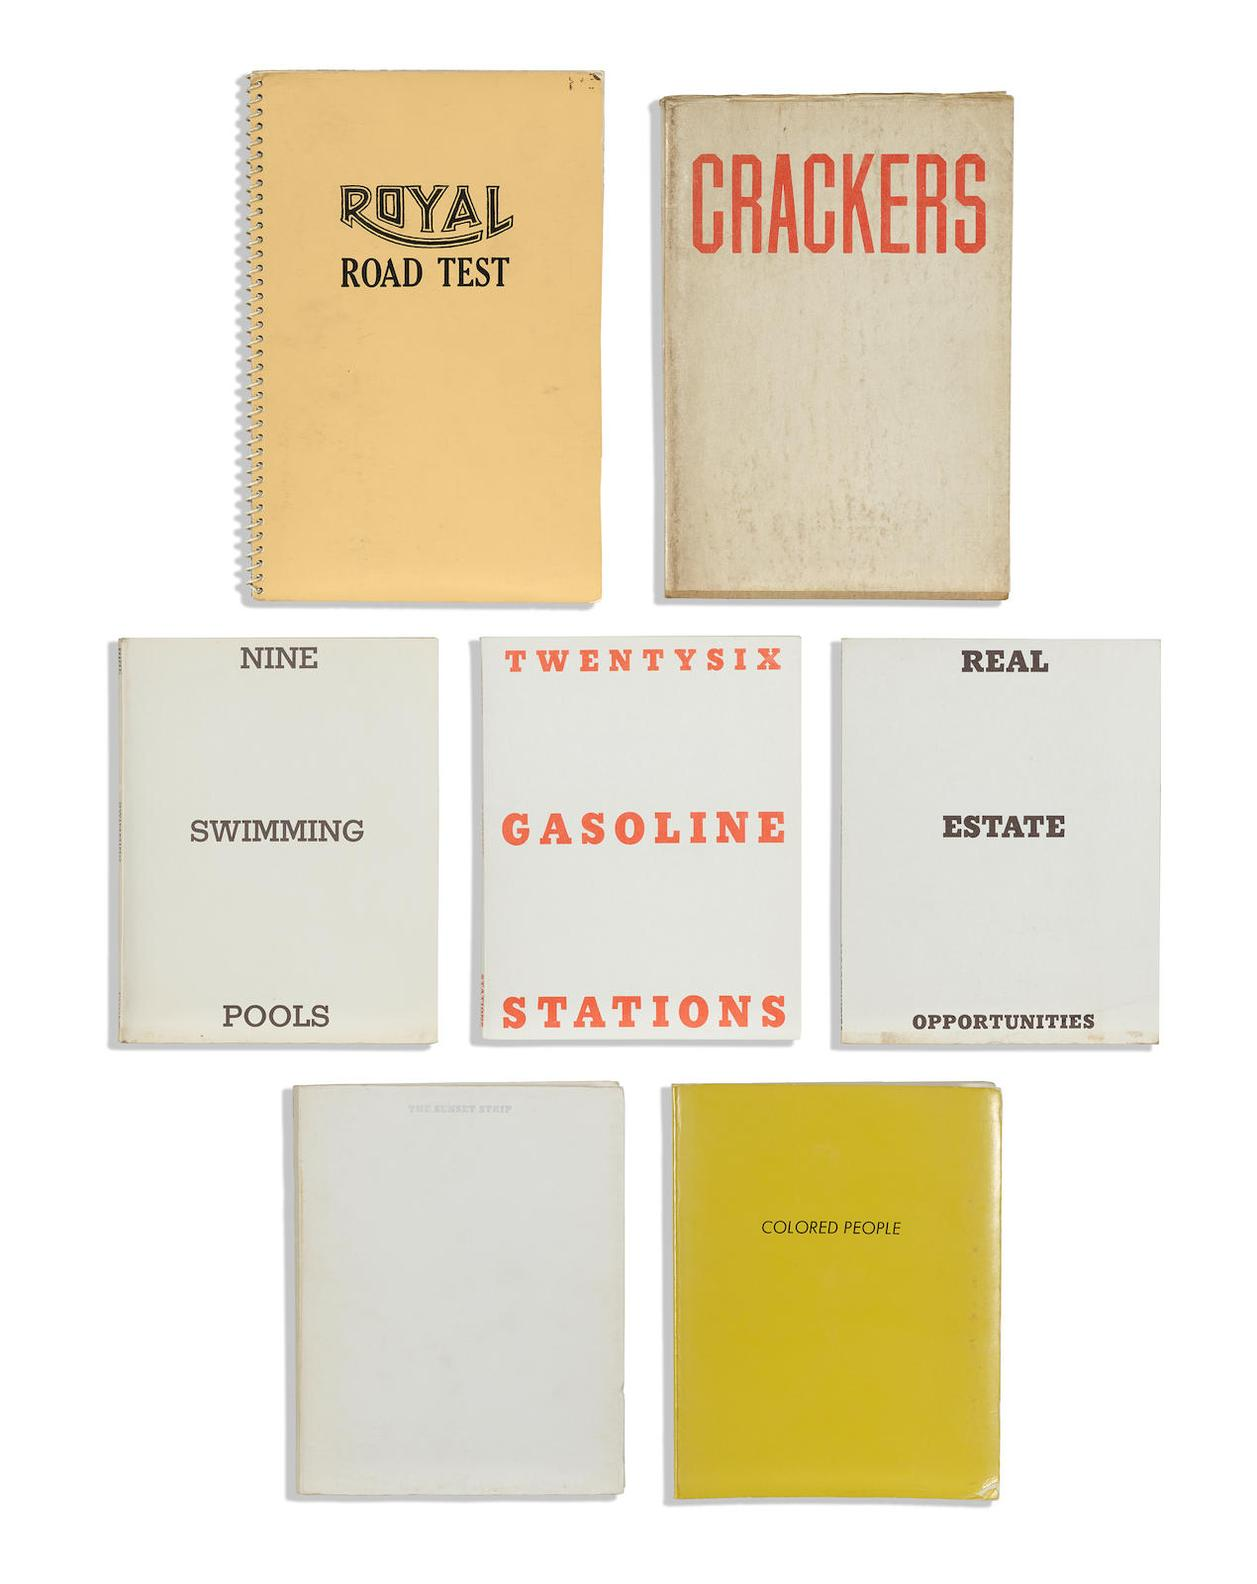 Ed Ruscha-Group Of 7 Books 7 , Twenty-six Gasoline Stations (1963, 3rd ed.); Every Building on The Sunset Strip (1966, 1st ed.); Royal Road Test (1967, 3rd ed.); Nine Swimming Pools and a Broken Glass (1968, 1st ed.); Crackers (1969); Real Estate Opportunities (1970); Colored People (1972)-1972